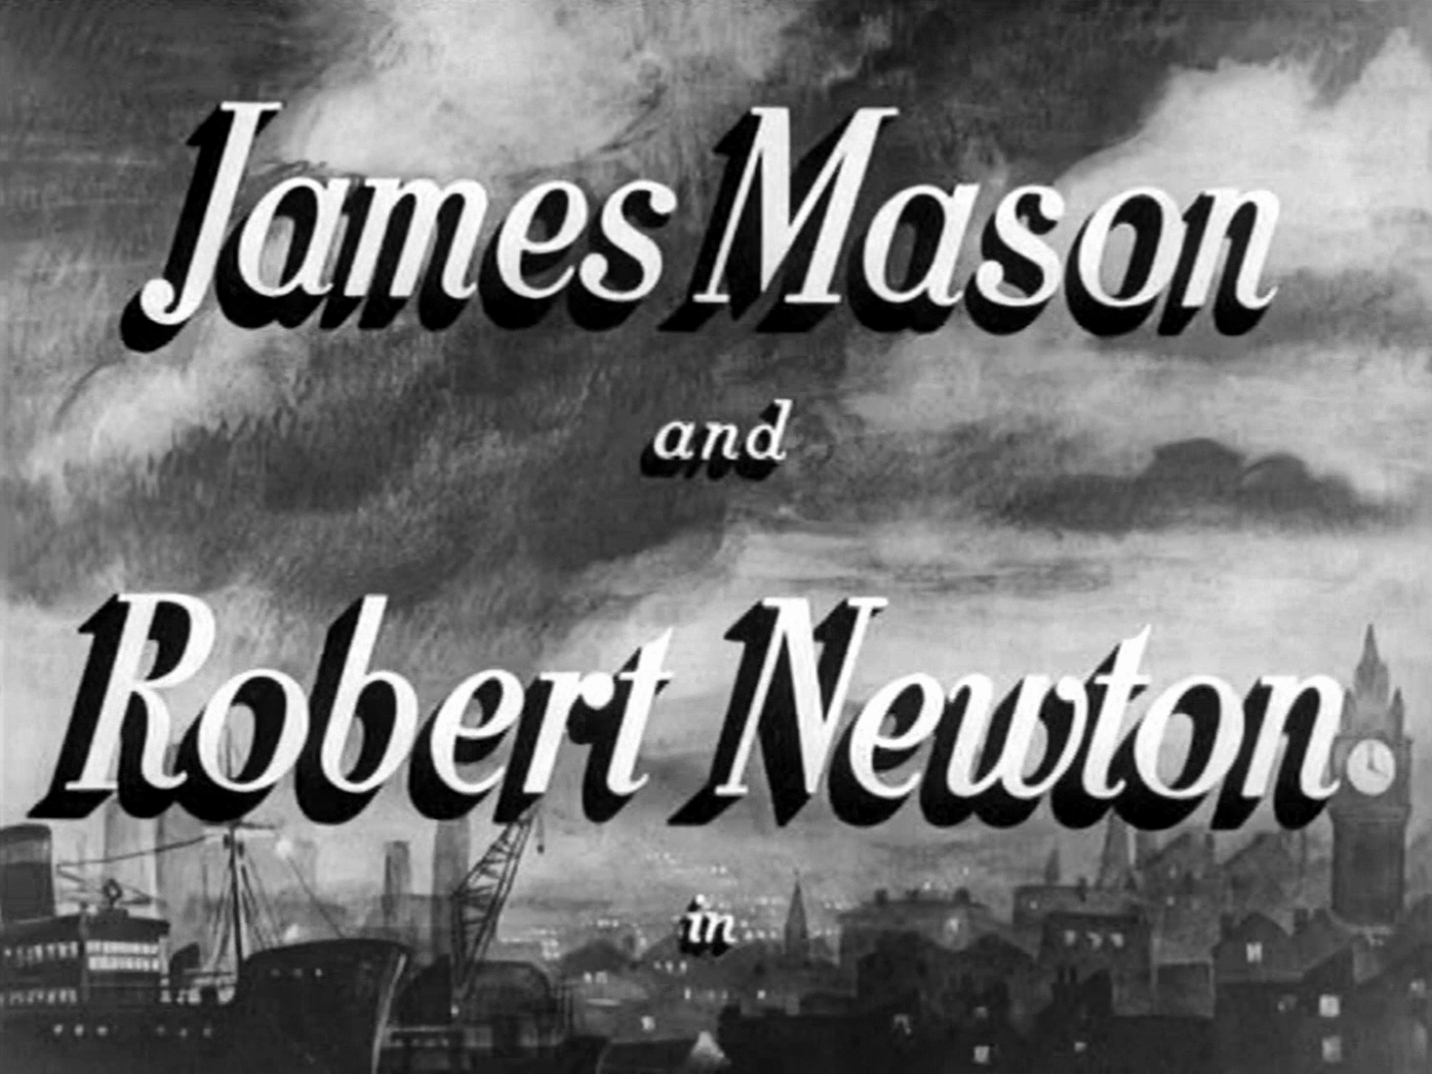 Main title from Odd Man Out (1947) (3).  James Mason and Robert Newton in